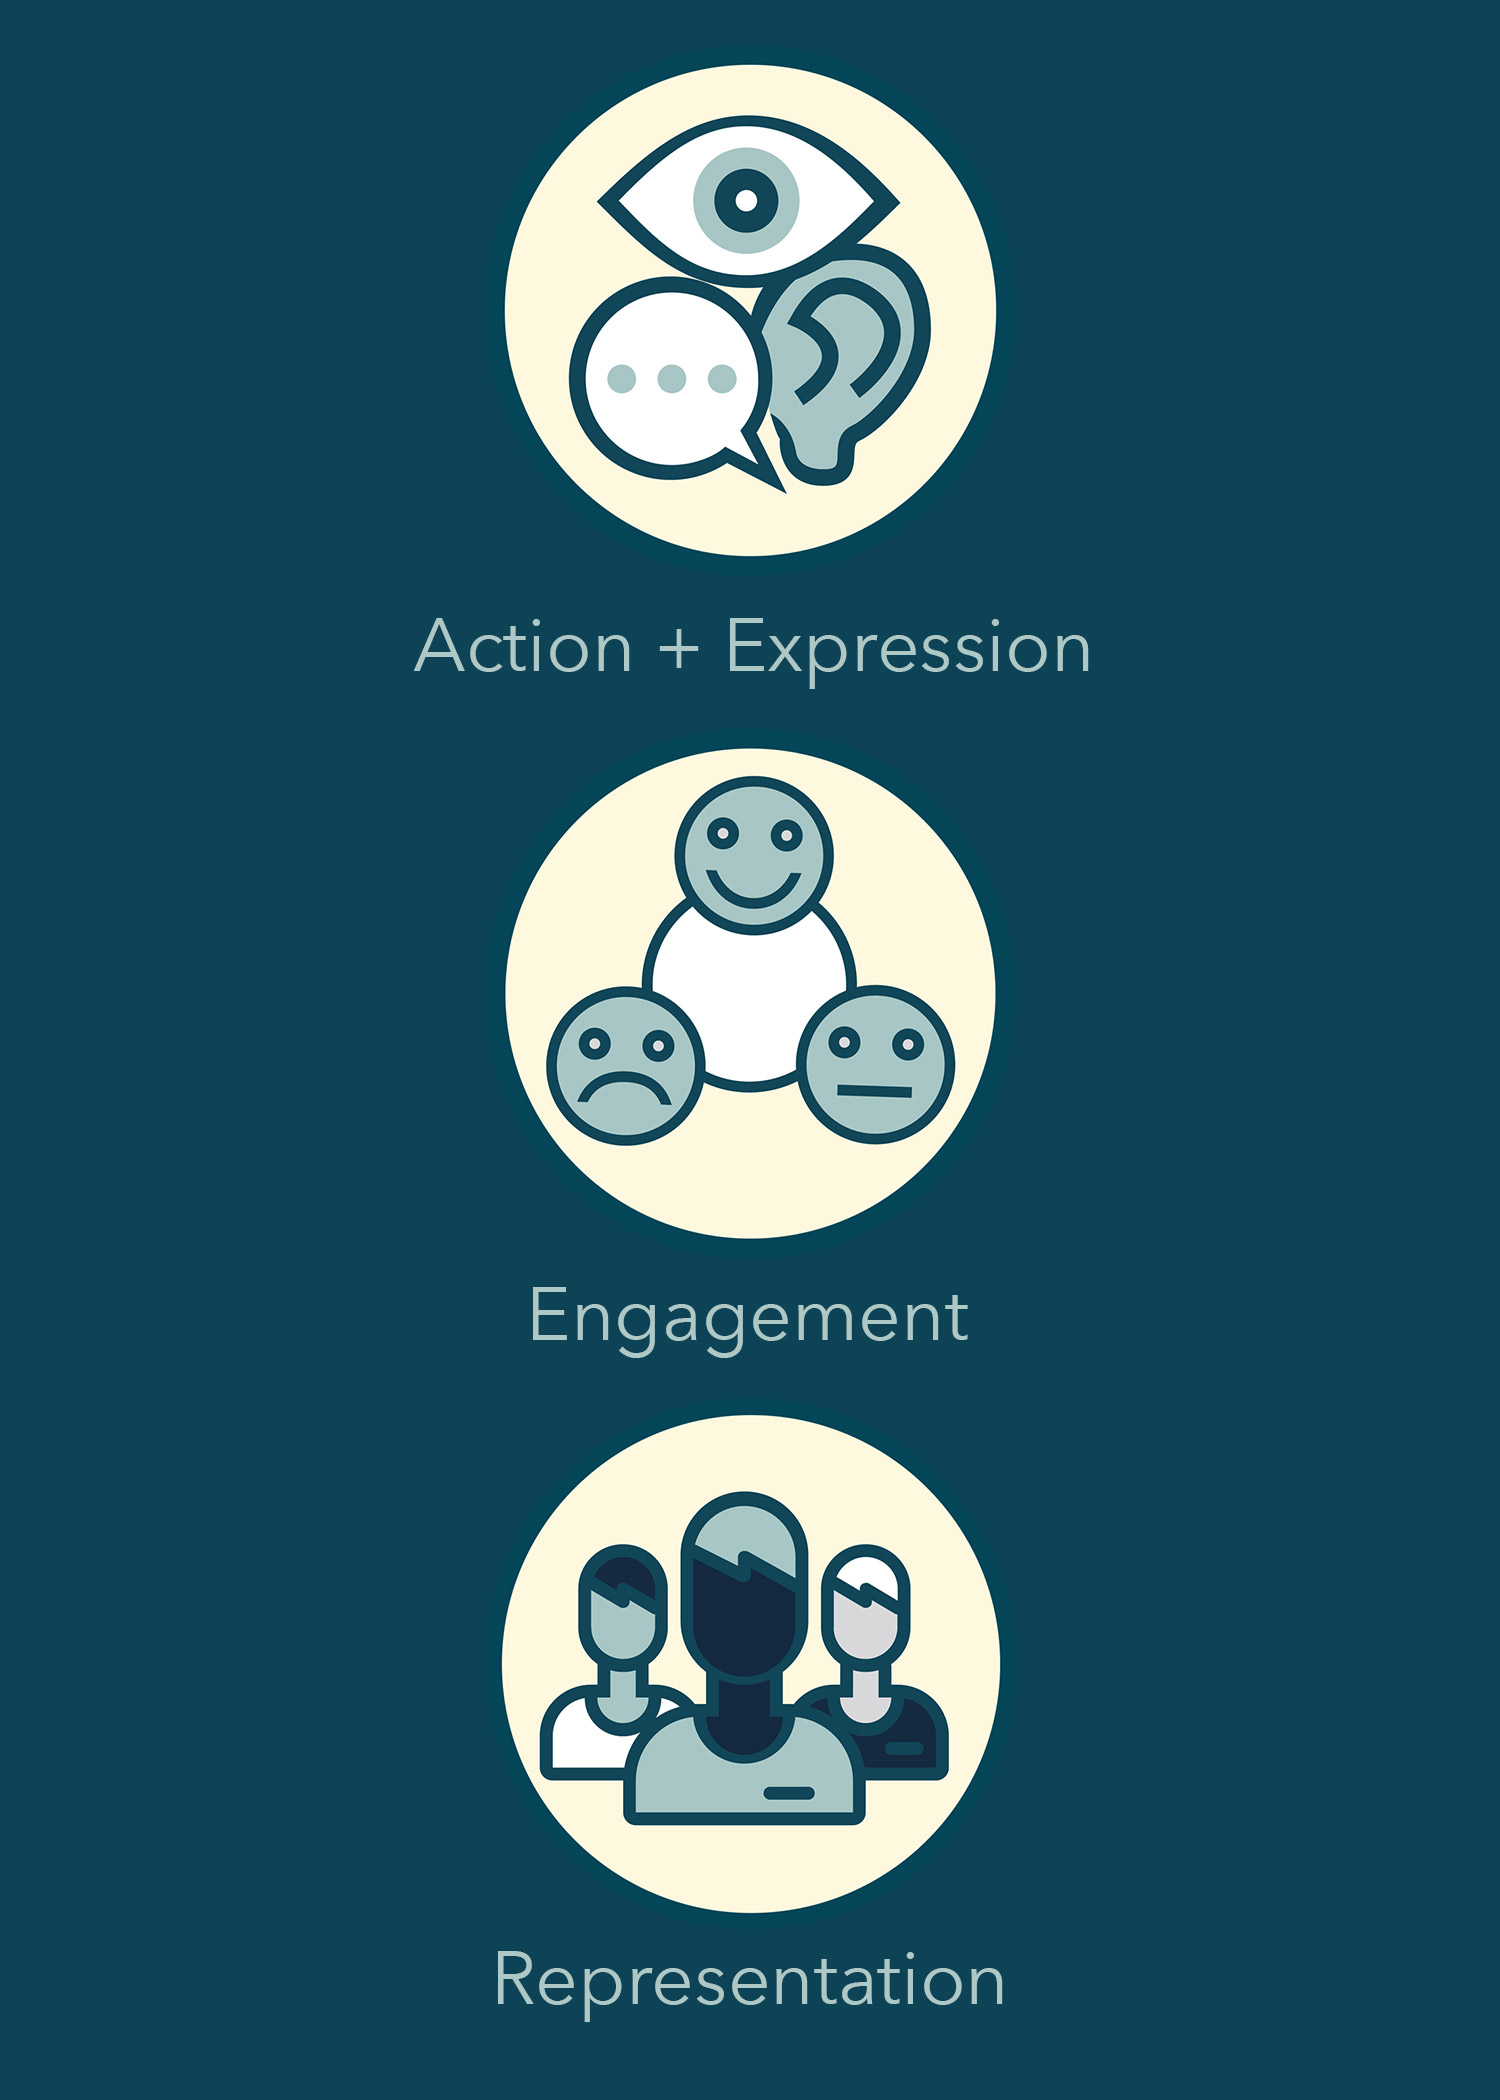 Quick Facts - About FlexFlex is a program designed to support design educators to open up their teaching practices to a more Universal Design approach, one that better supports their students. About the ToolkitThe toolkit was designed for higher education instructors to explore the principles of UDL in a simplified and AODA compliant way. The toolkit was designed to be adaptable to an instructor's needs, specific course content, and the changing nature of information and knowledge.About the BrandingWorking with my client's initial references and direction, a branding system and brand guidelines were created to unify all the different pieces of the Flex project together.About the ReportThe report was designed to convey all the background research, ideology and important learning concepts of Universal Design for Learners that was not directly pertinent to the Flex toolkit, but still integral to Flex as an MA thesis project.